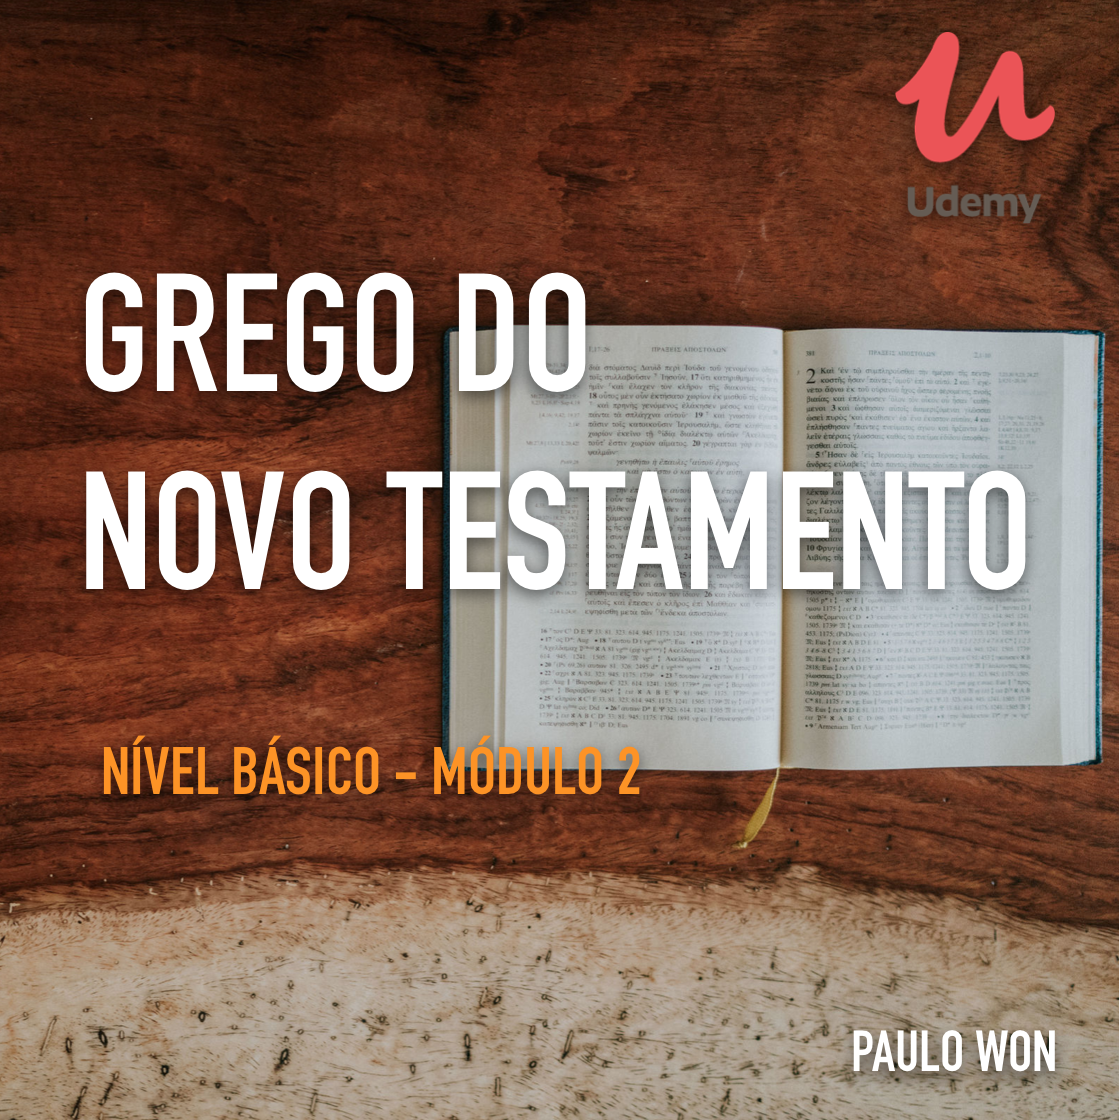 GREGO DO NT - BÁSICO 2 - PAULO WON.png